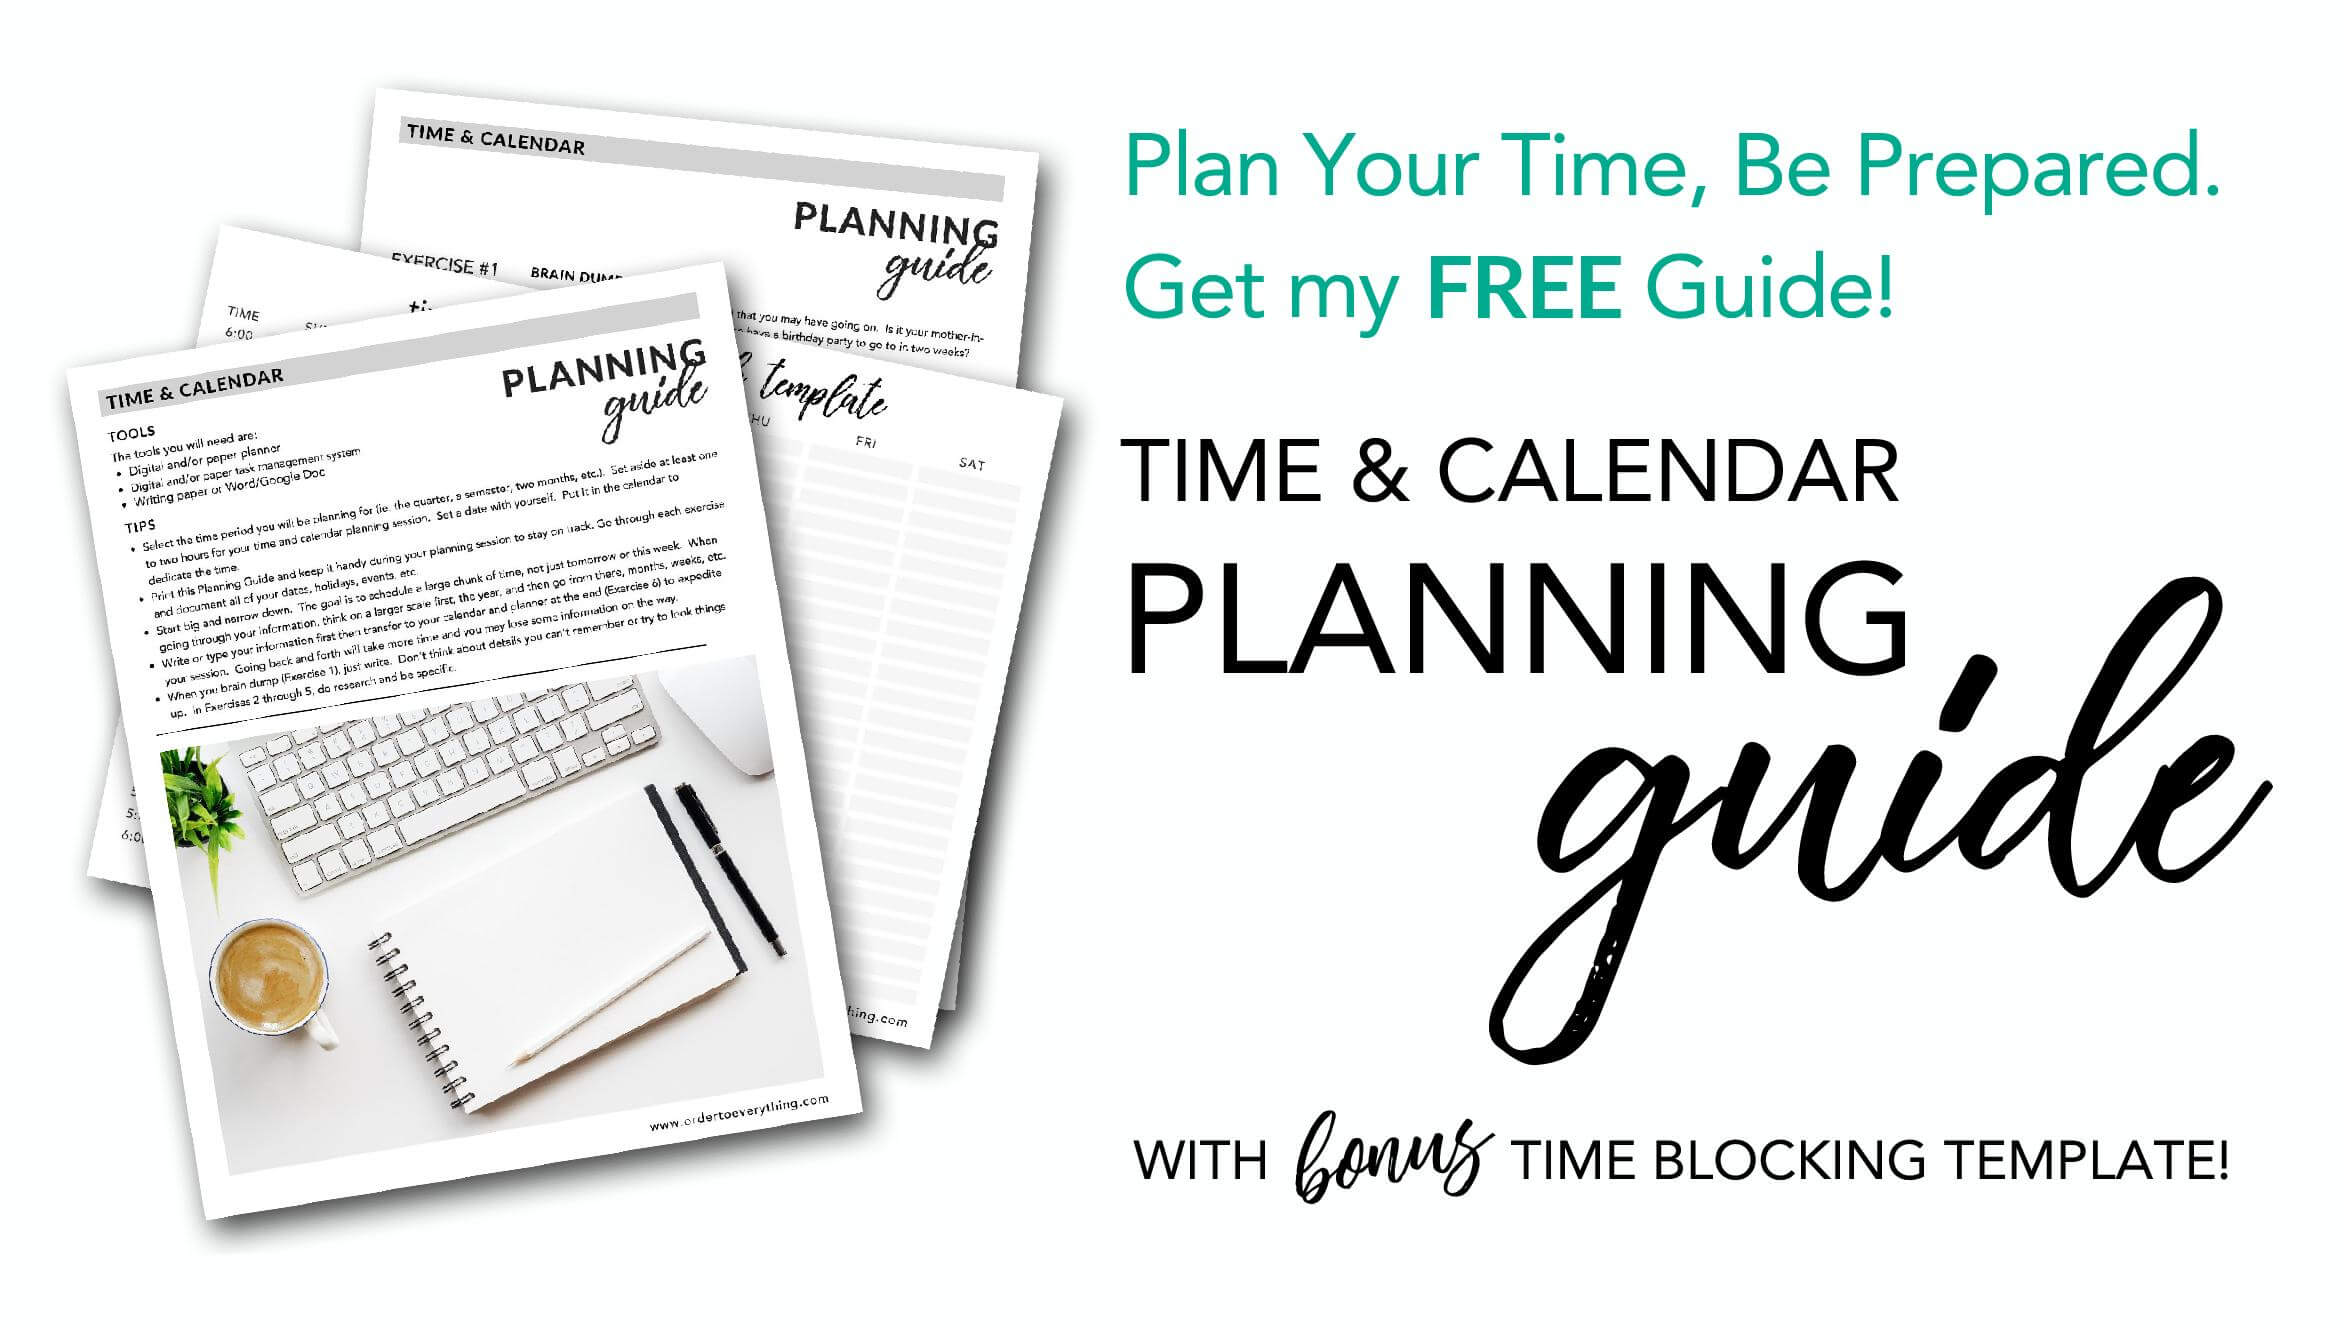 PlanningGuidewithTimeBlockingTemplate(tiny).jpg